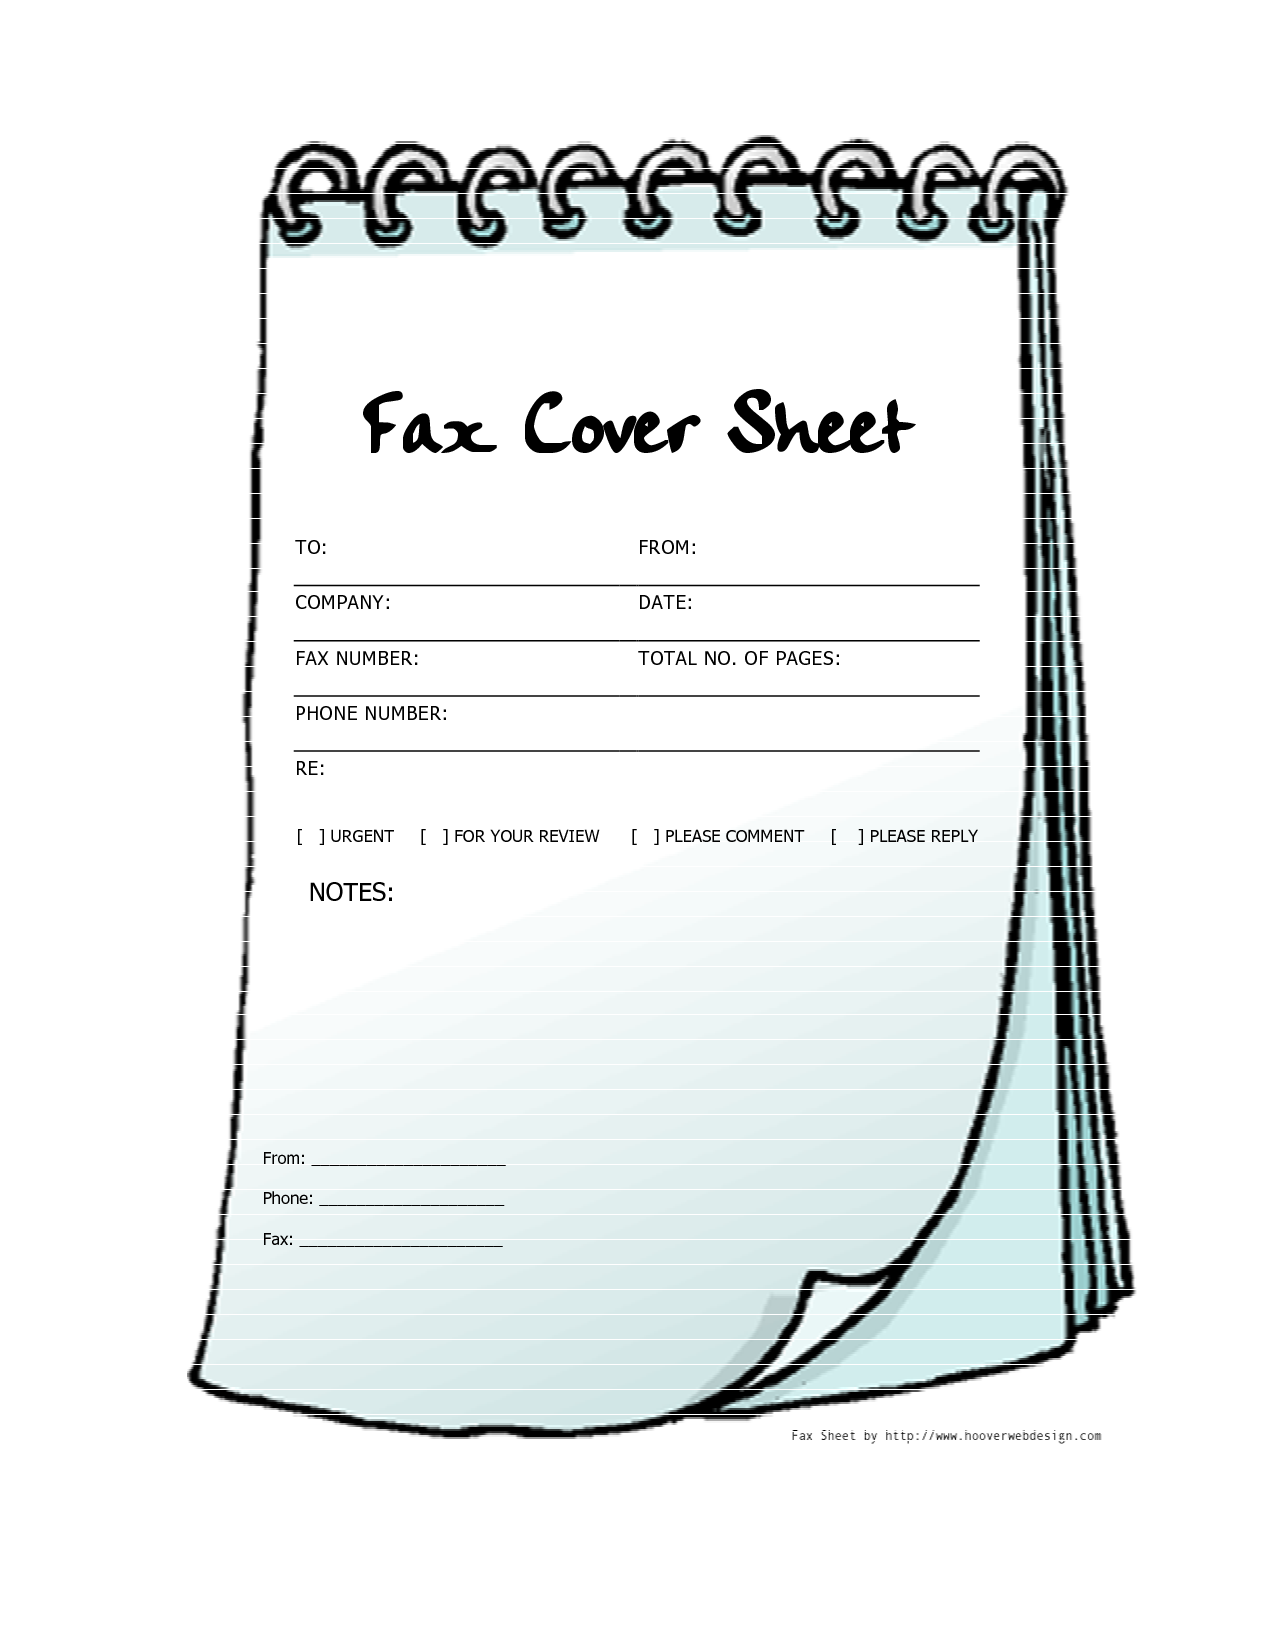 Free Printable Fax Cover Sheets | Free Printable Fax Cover ...